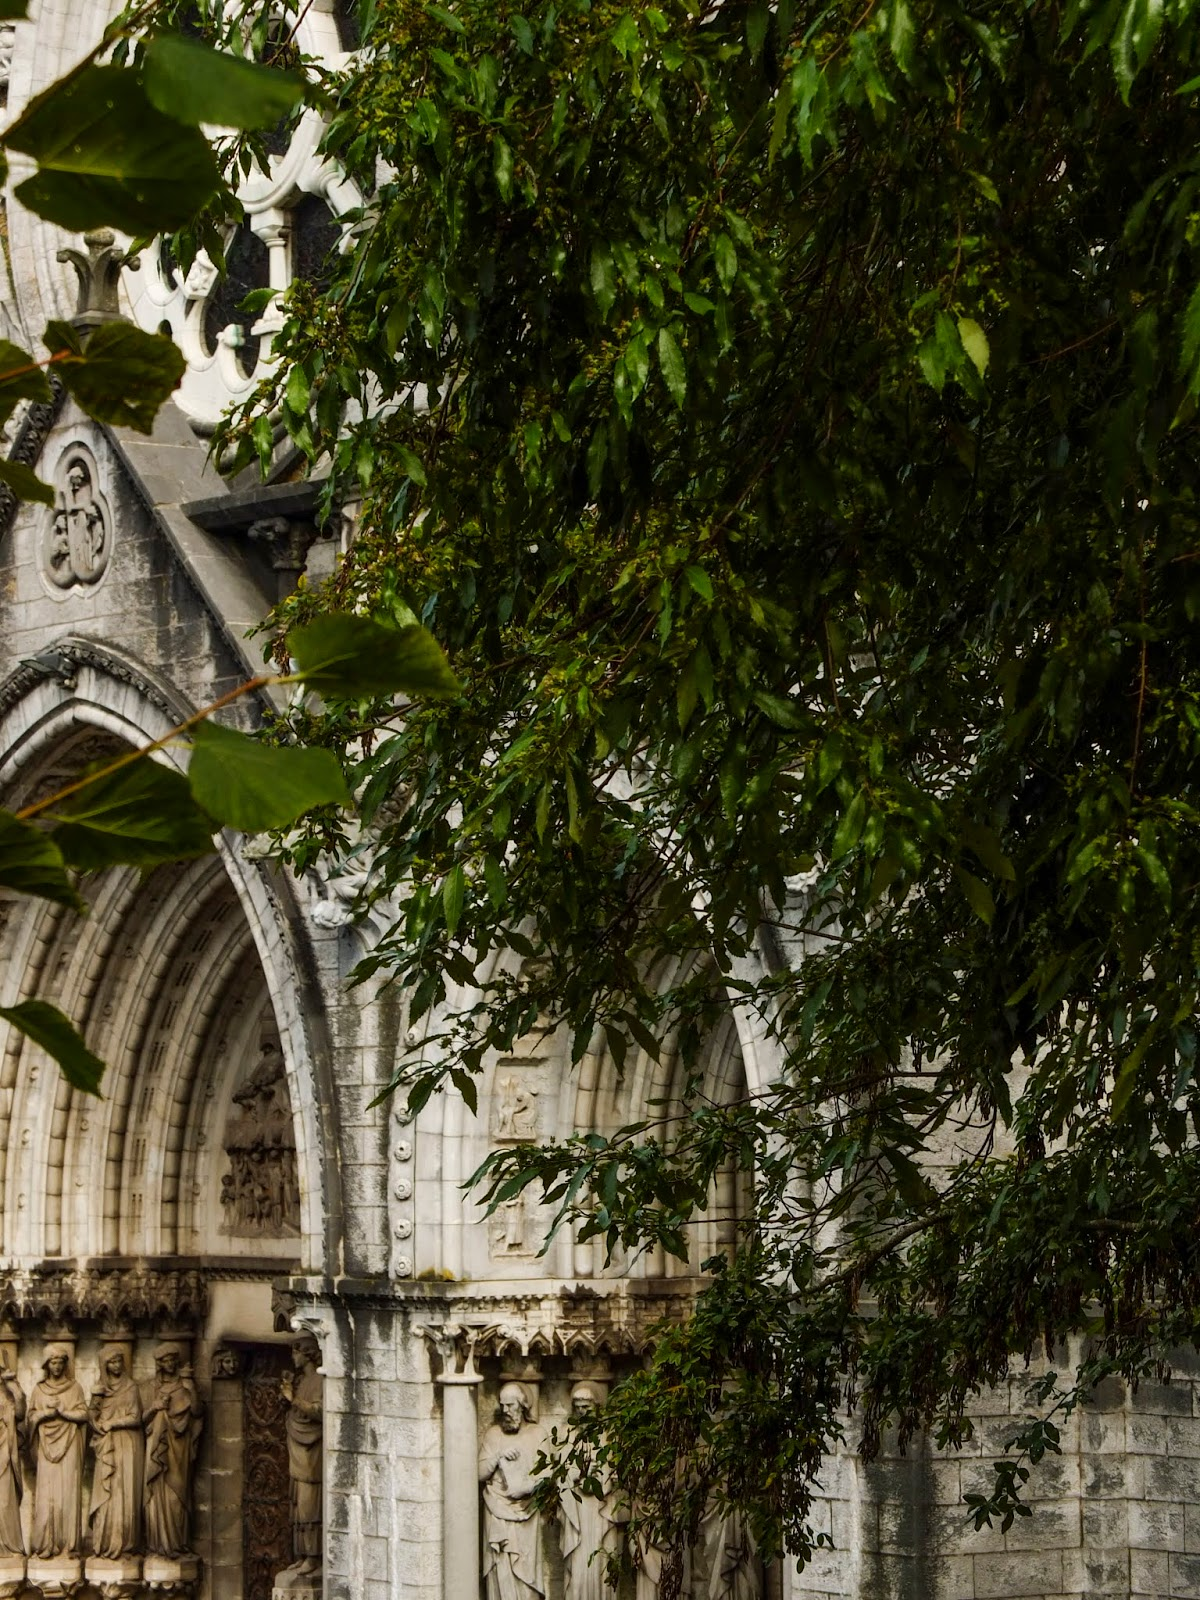 The entrance to Saint Fin Barre's Cathedral behind some tree branches.